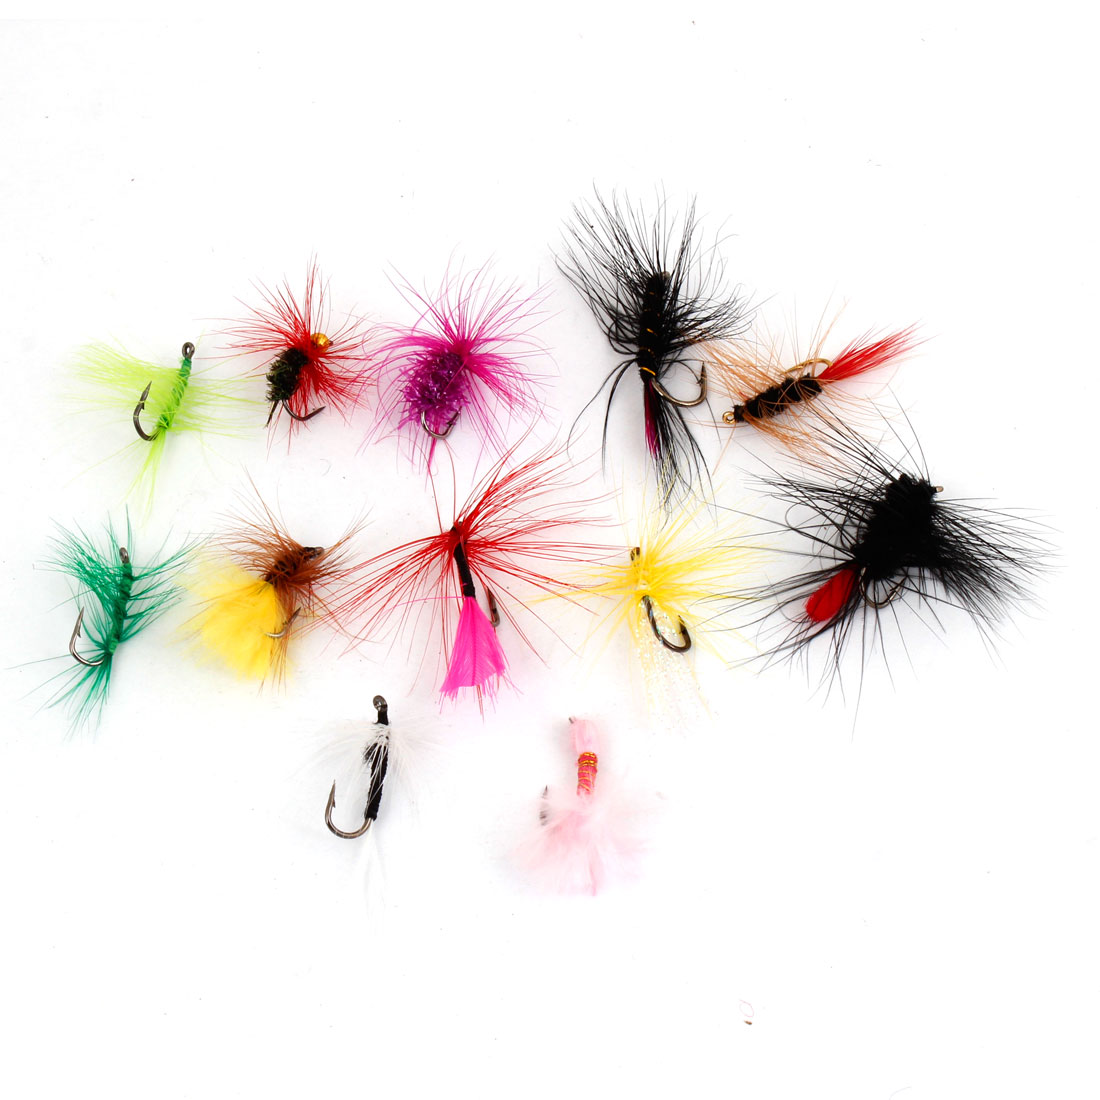 12 X Colorful Insect Butterfly Trout Mayfly Flies Hooks for Fishing